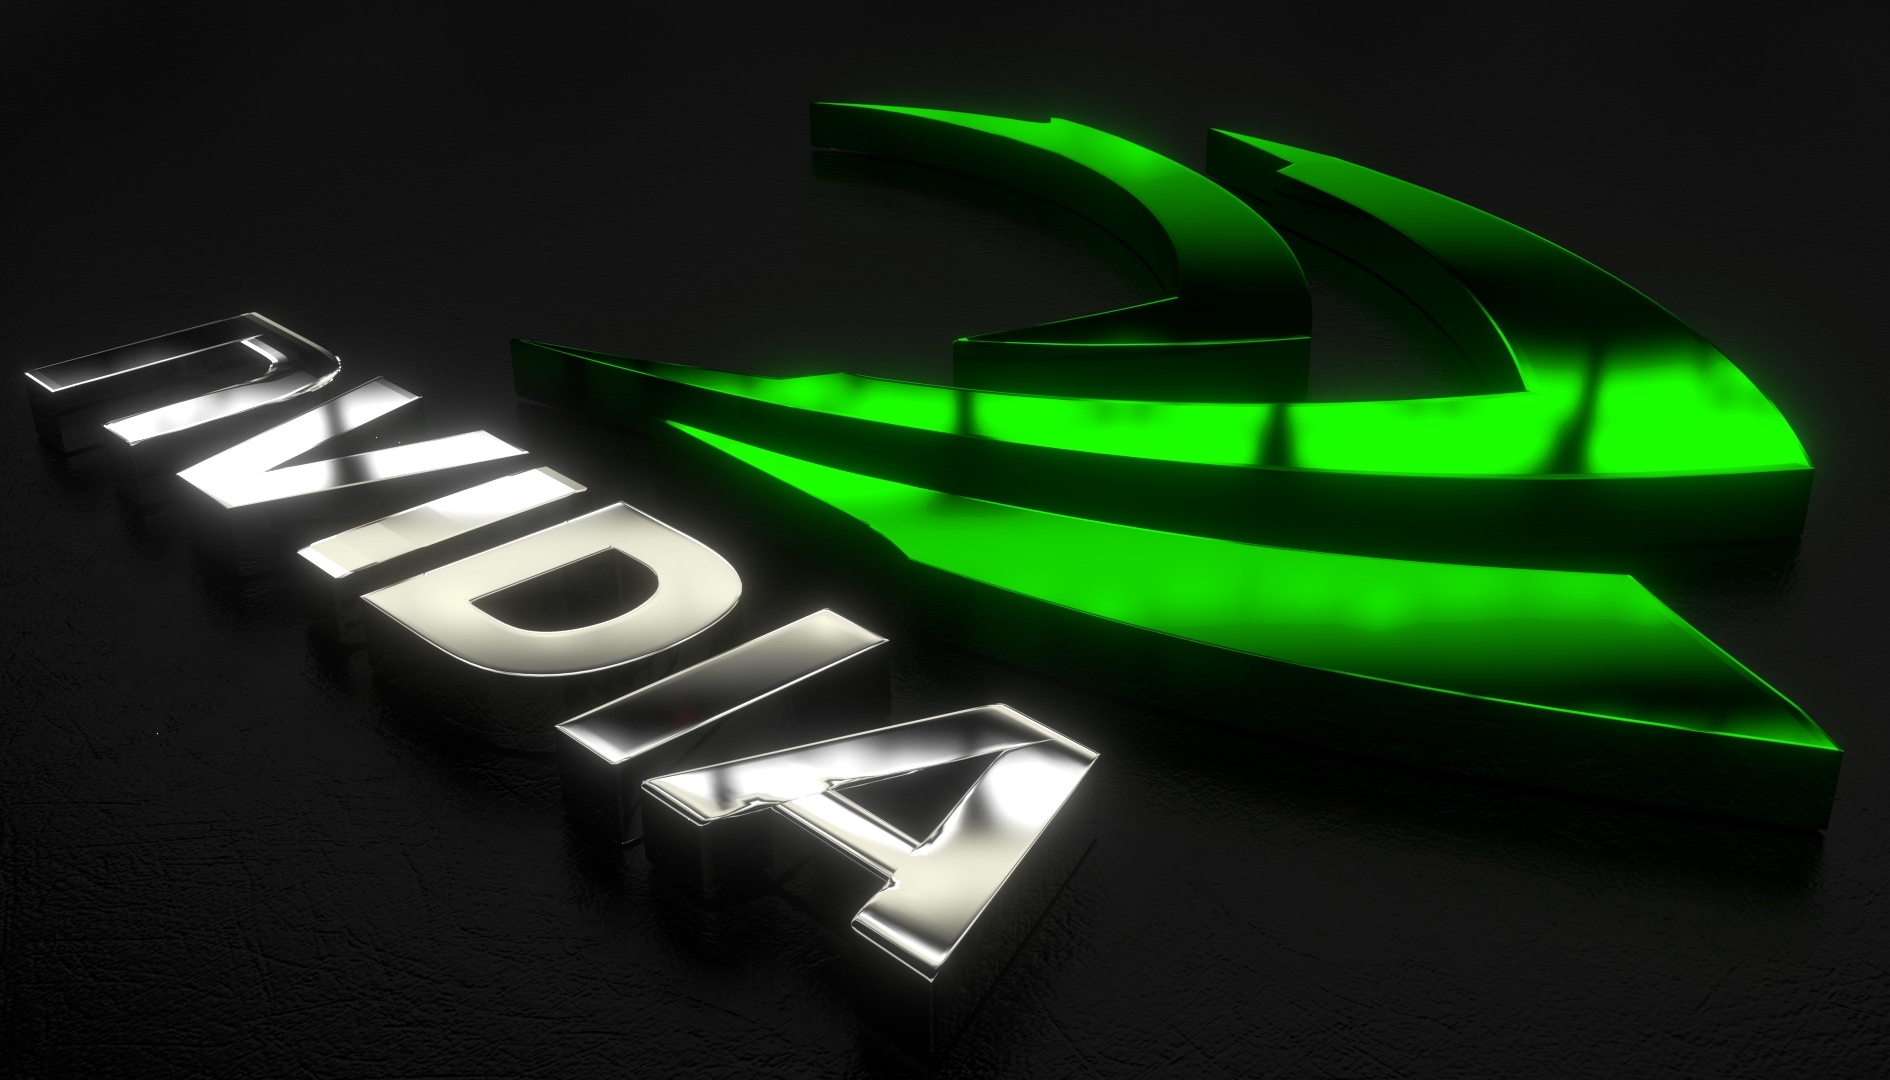 NVIDIA, i driver GeForce Game Ready 456.55 WHQL sono ottimizzati per Star Wars: Squadrons